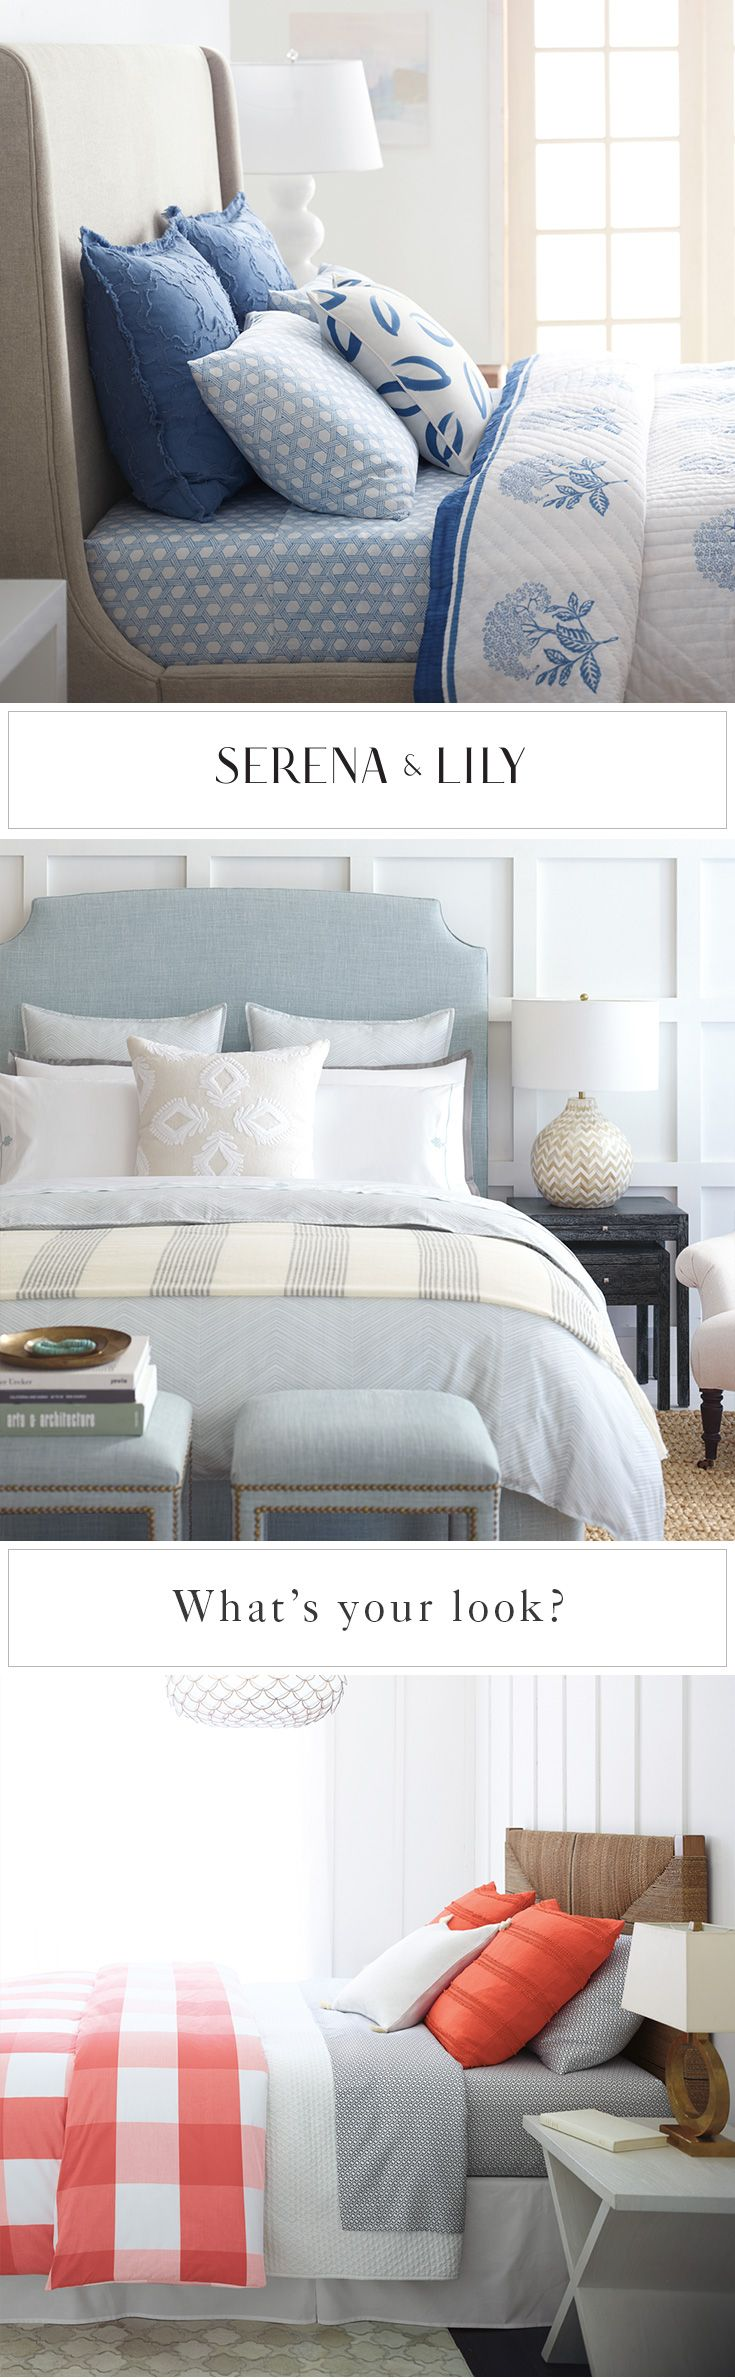 How do you make your bedroom your own? Find your perfect look at Serena & Lily.